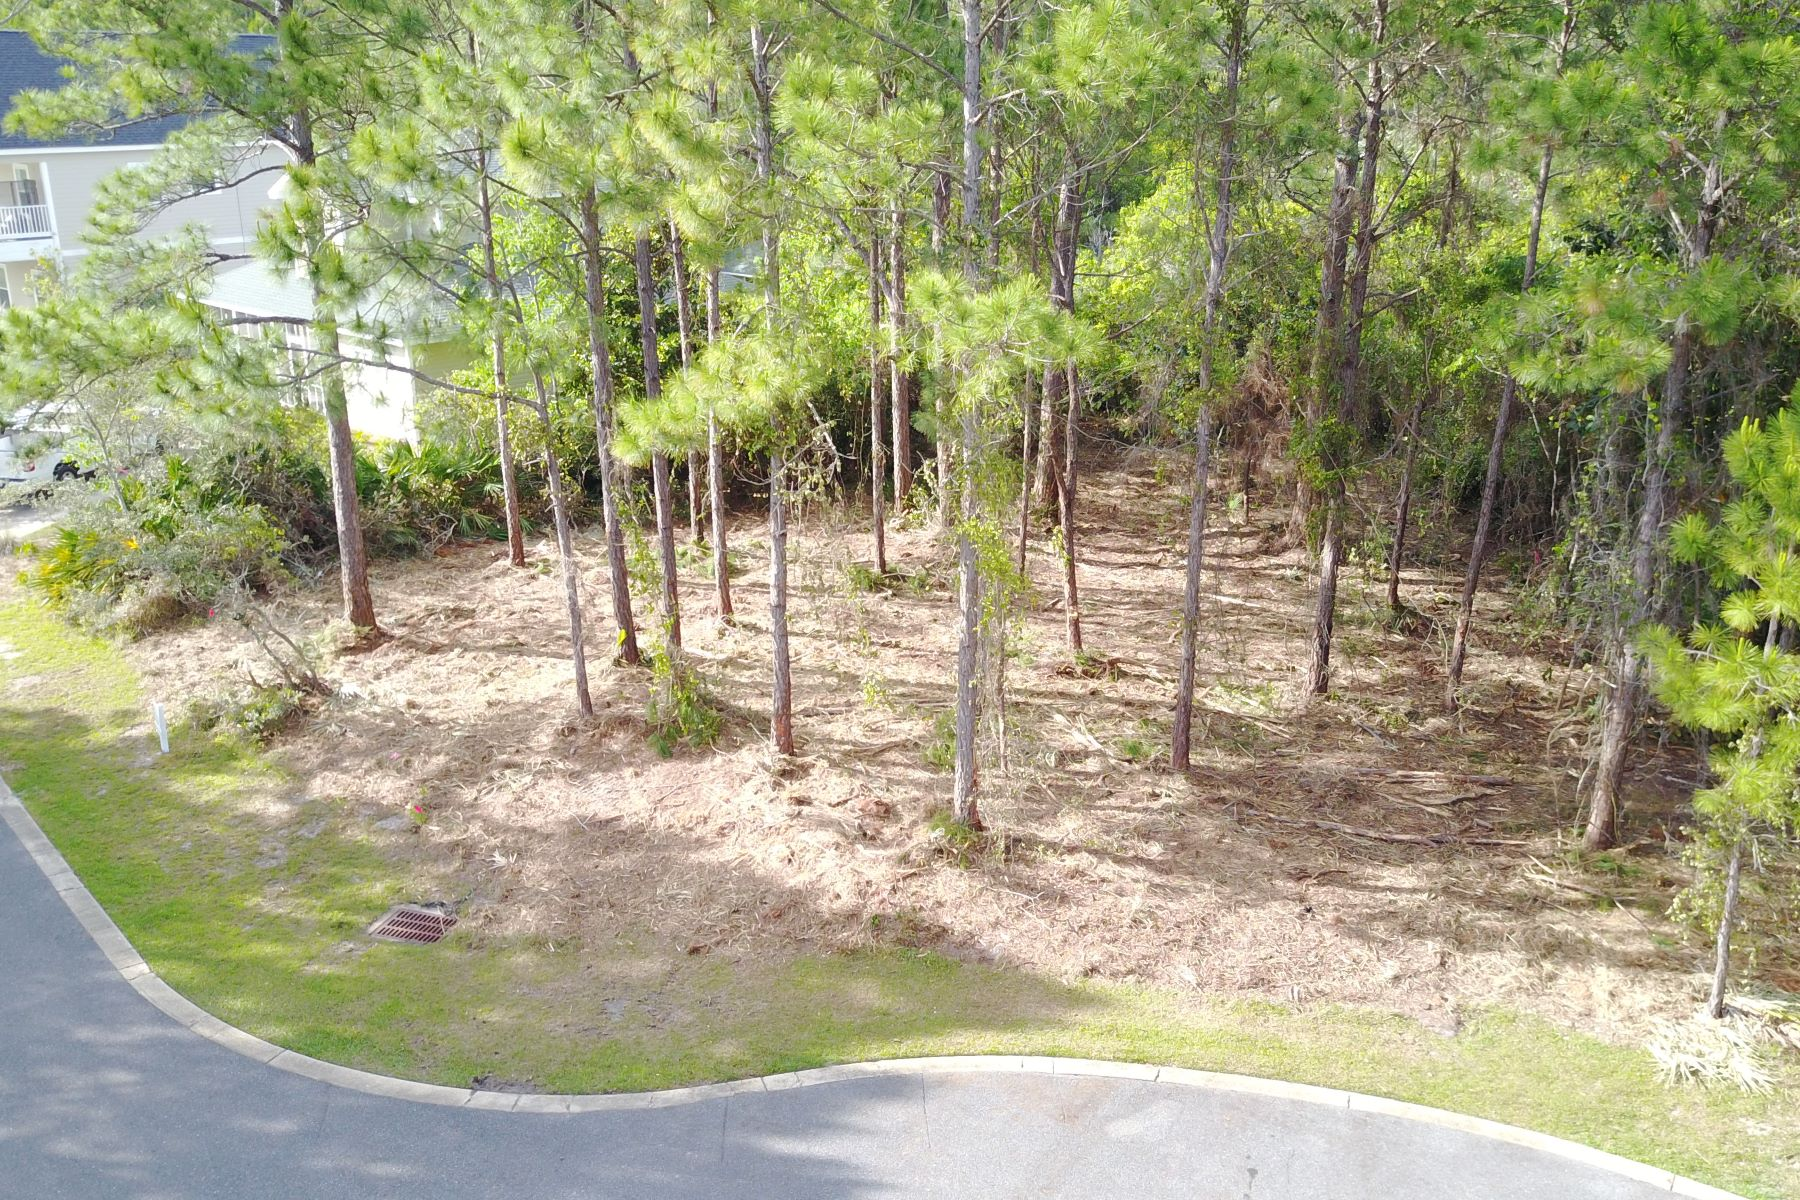 Земля для того Продажа на AMAZING HOMESITE IN SEAGROVE READY FOR YOUR DREAM HOME Lot 4 Wood Beach Drive, Santa Rosa Beach, Флорида, 32459 Соединенные Штаты